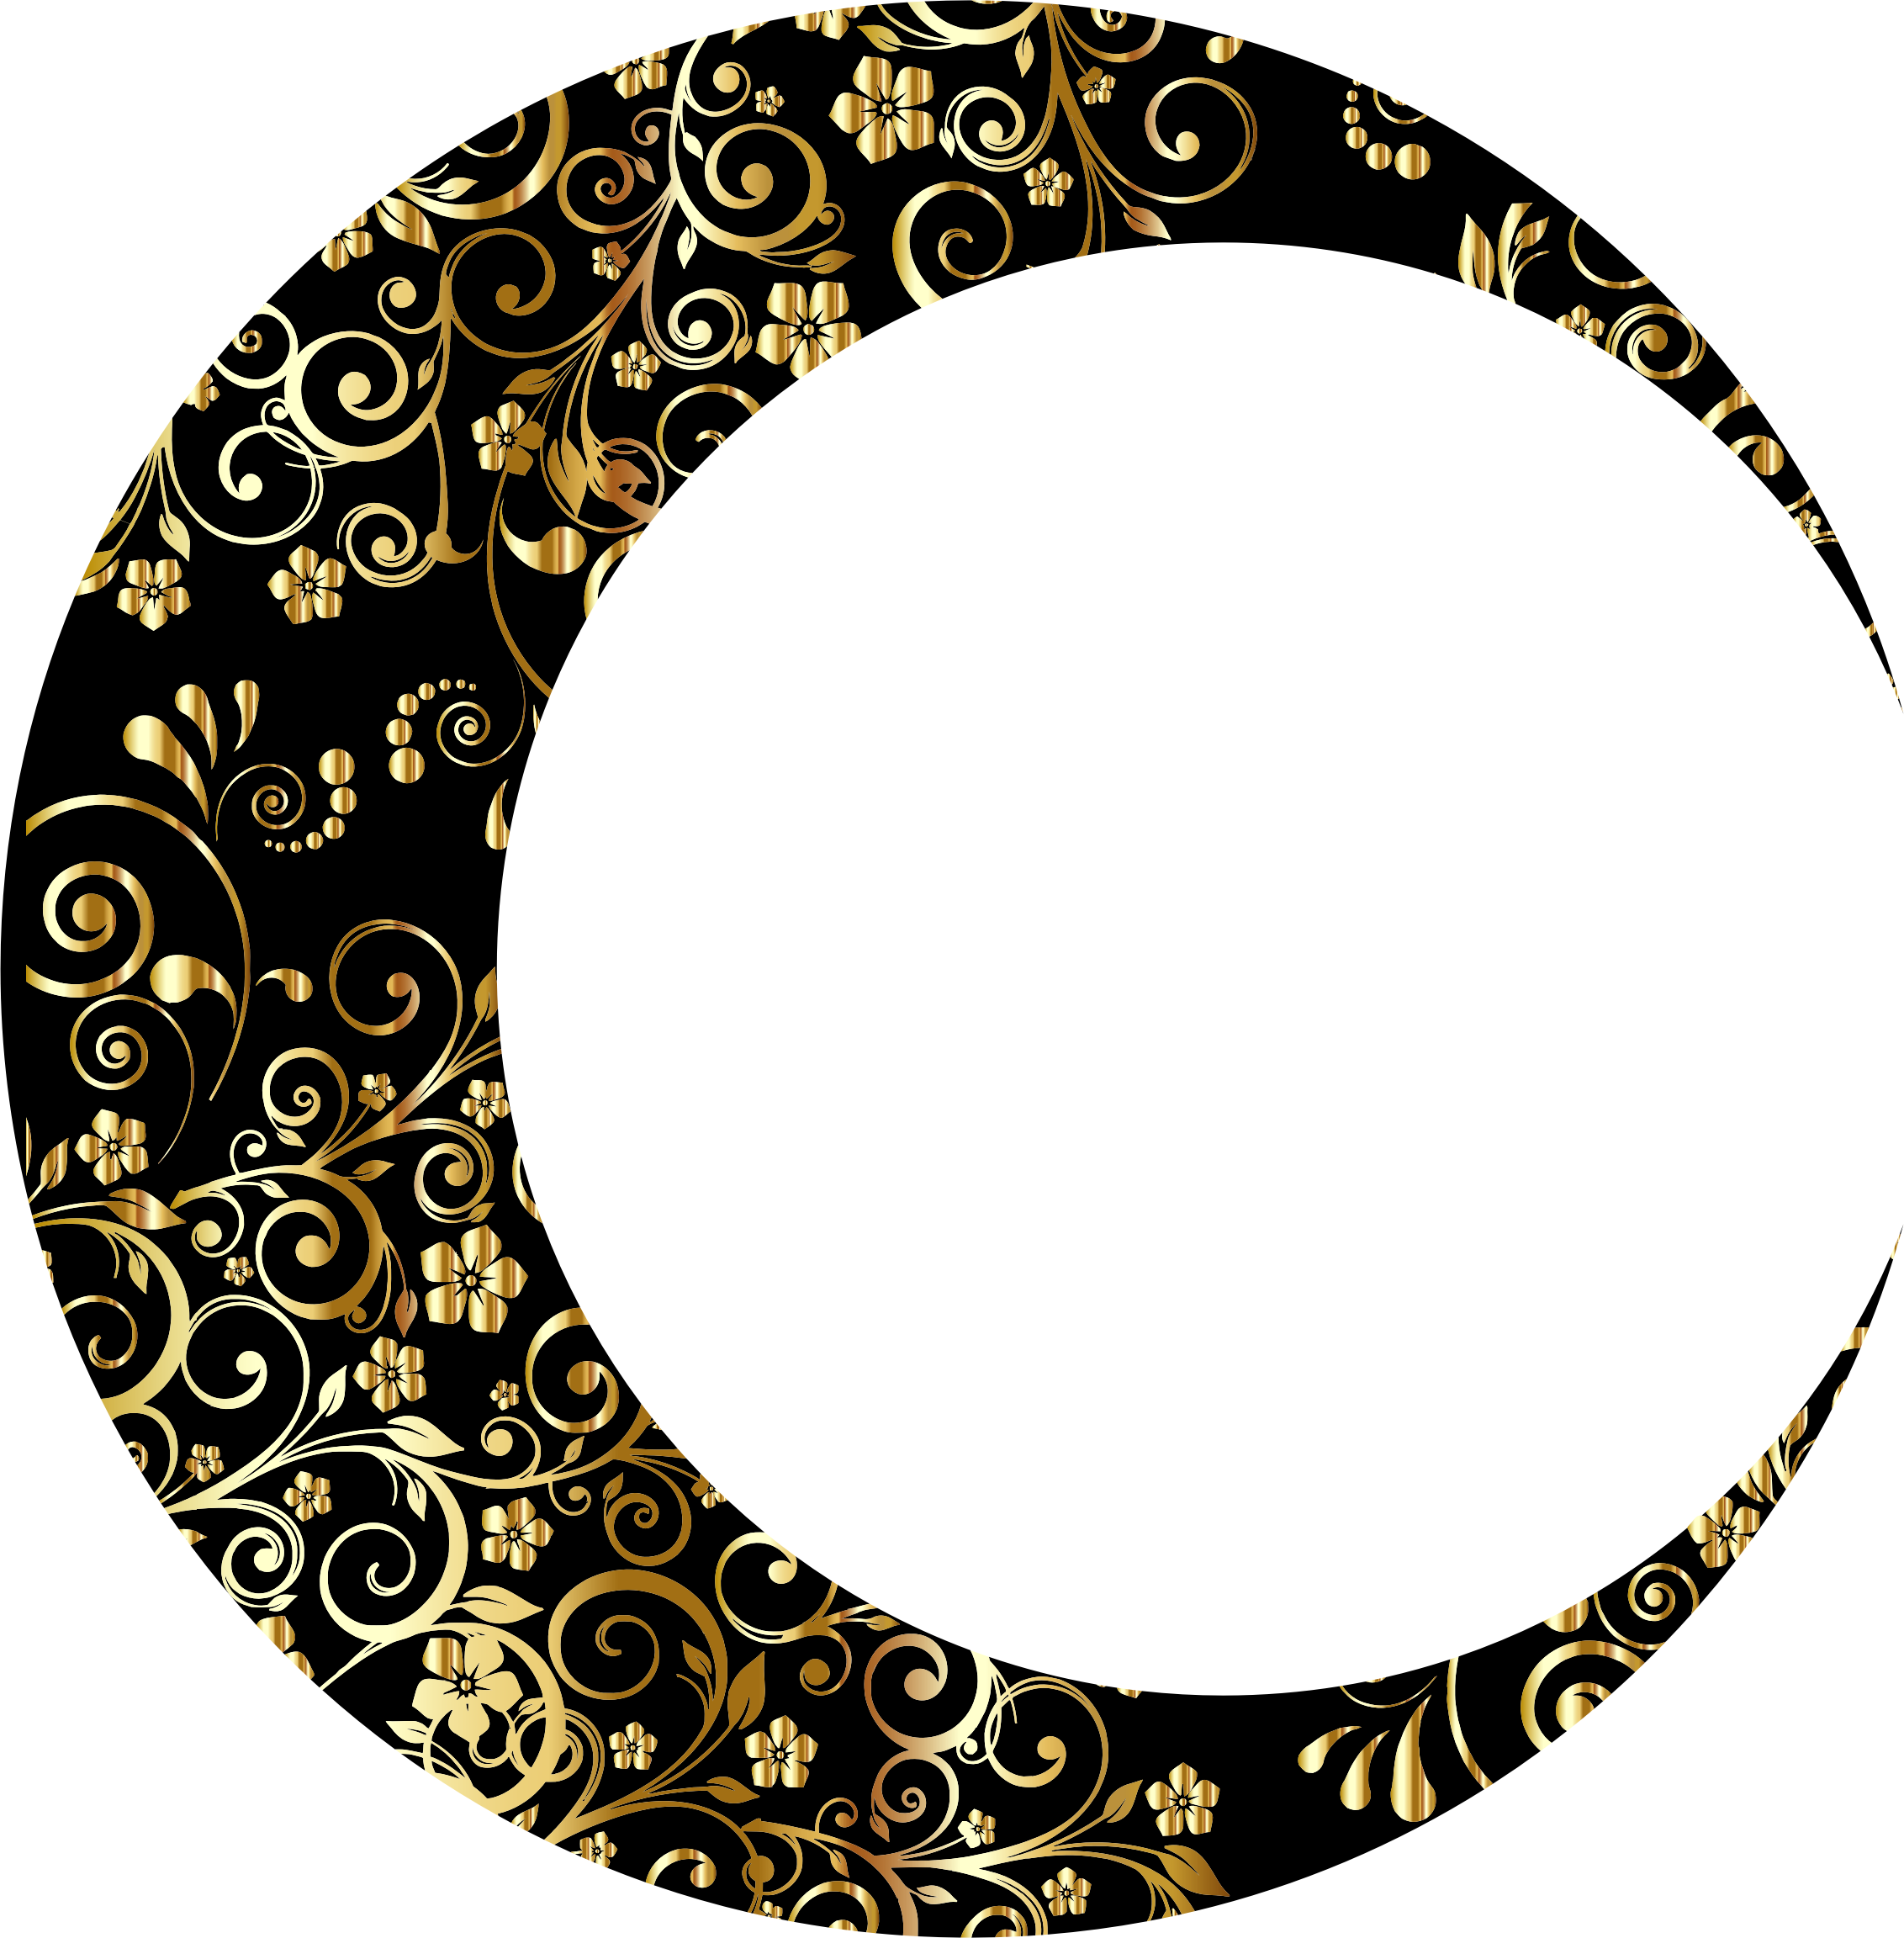 Gold Floral Crescent Moon Mark II 5 by GDJ